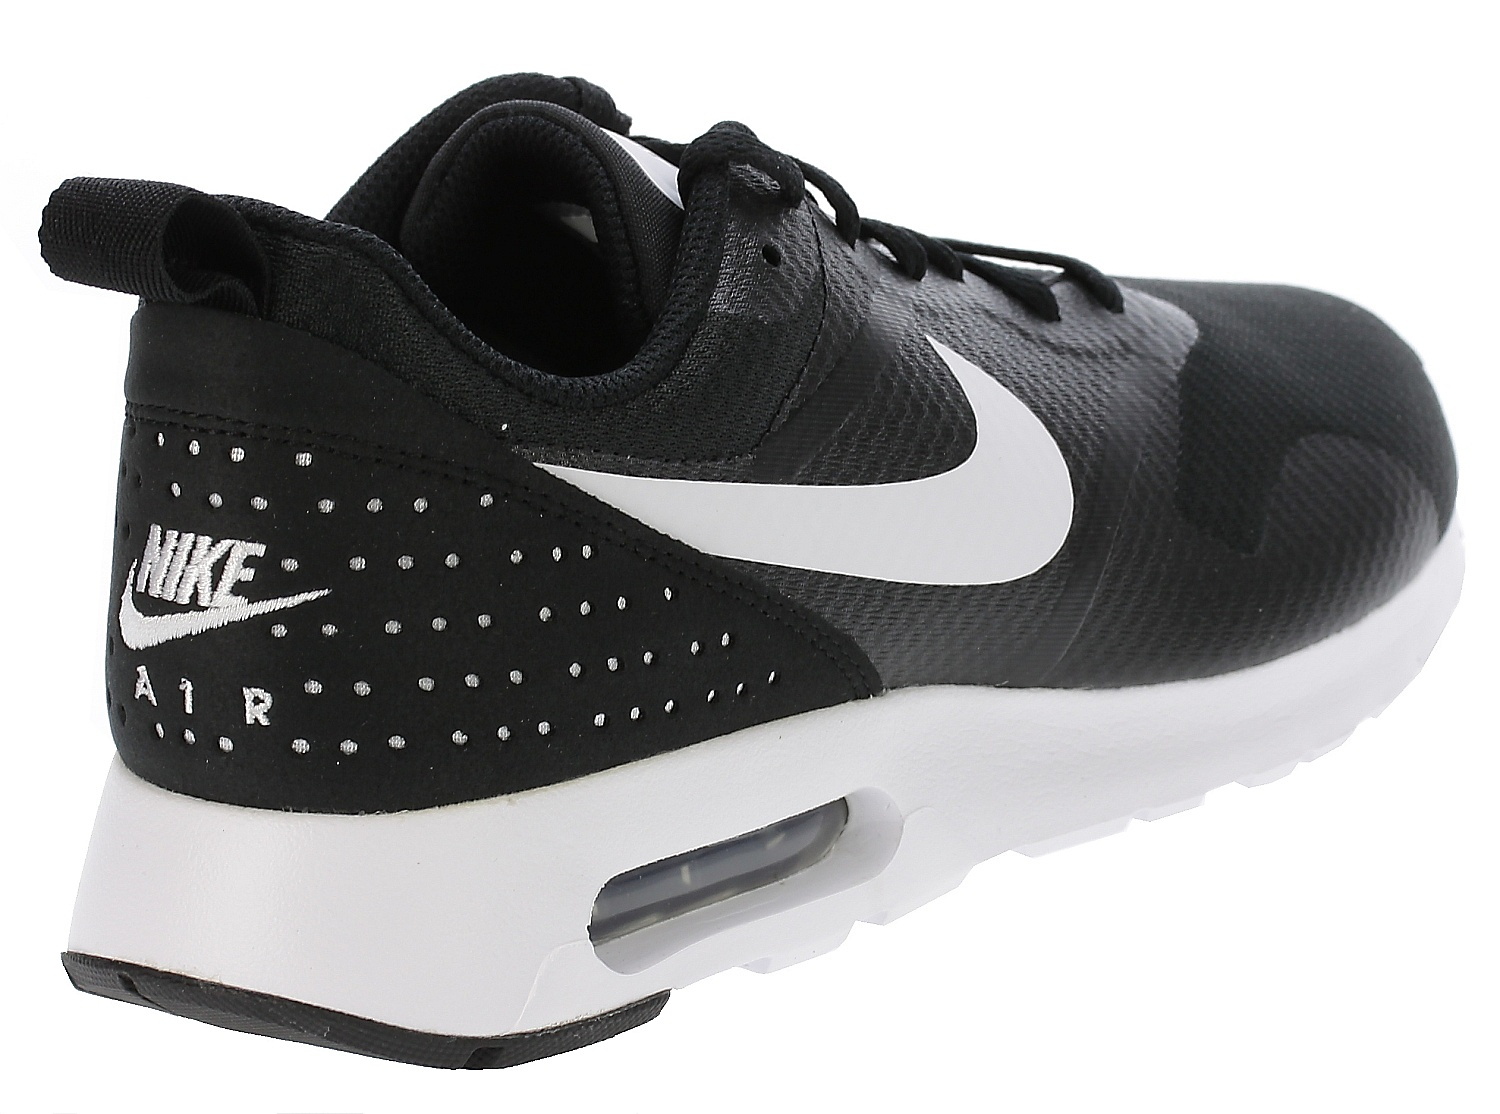 boty nike air max tavas black white black snowboard. Black Bedroom Furniture Sets. Home Design Ideas